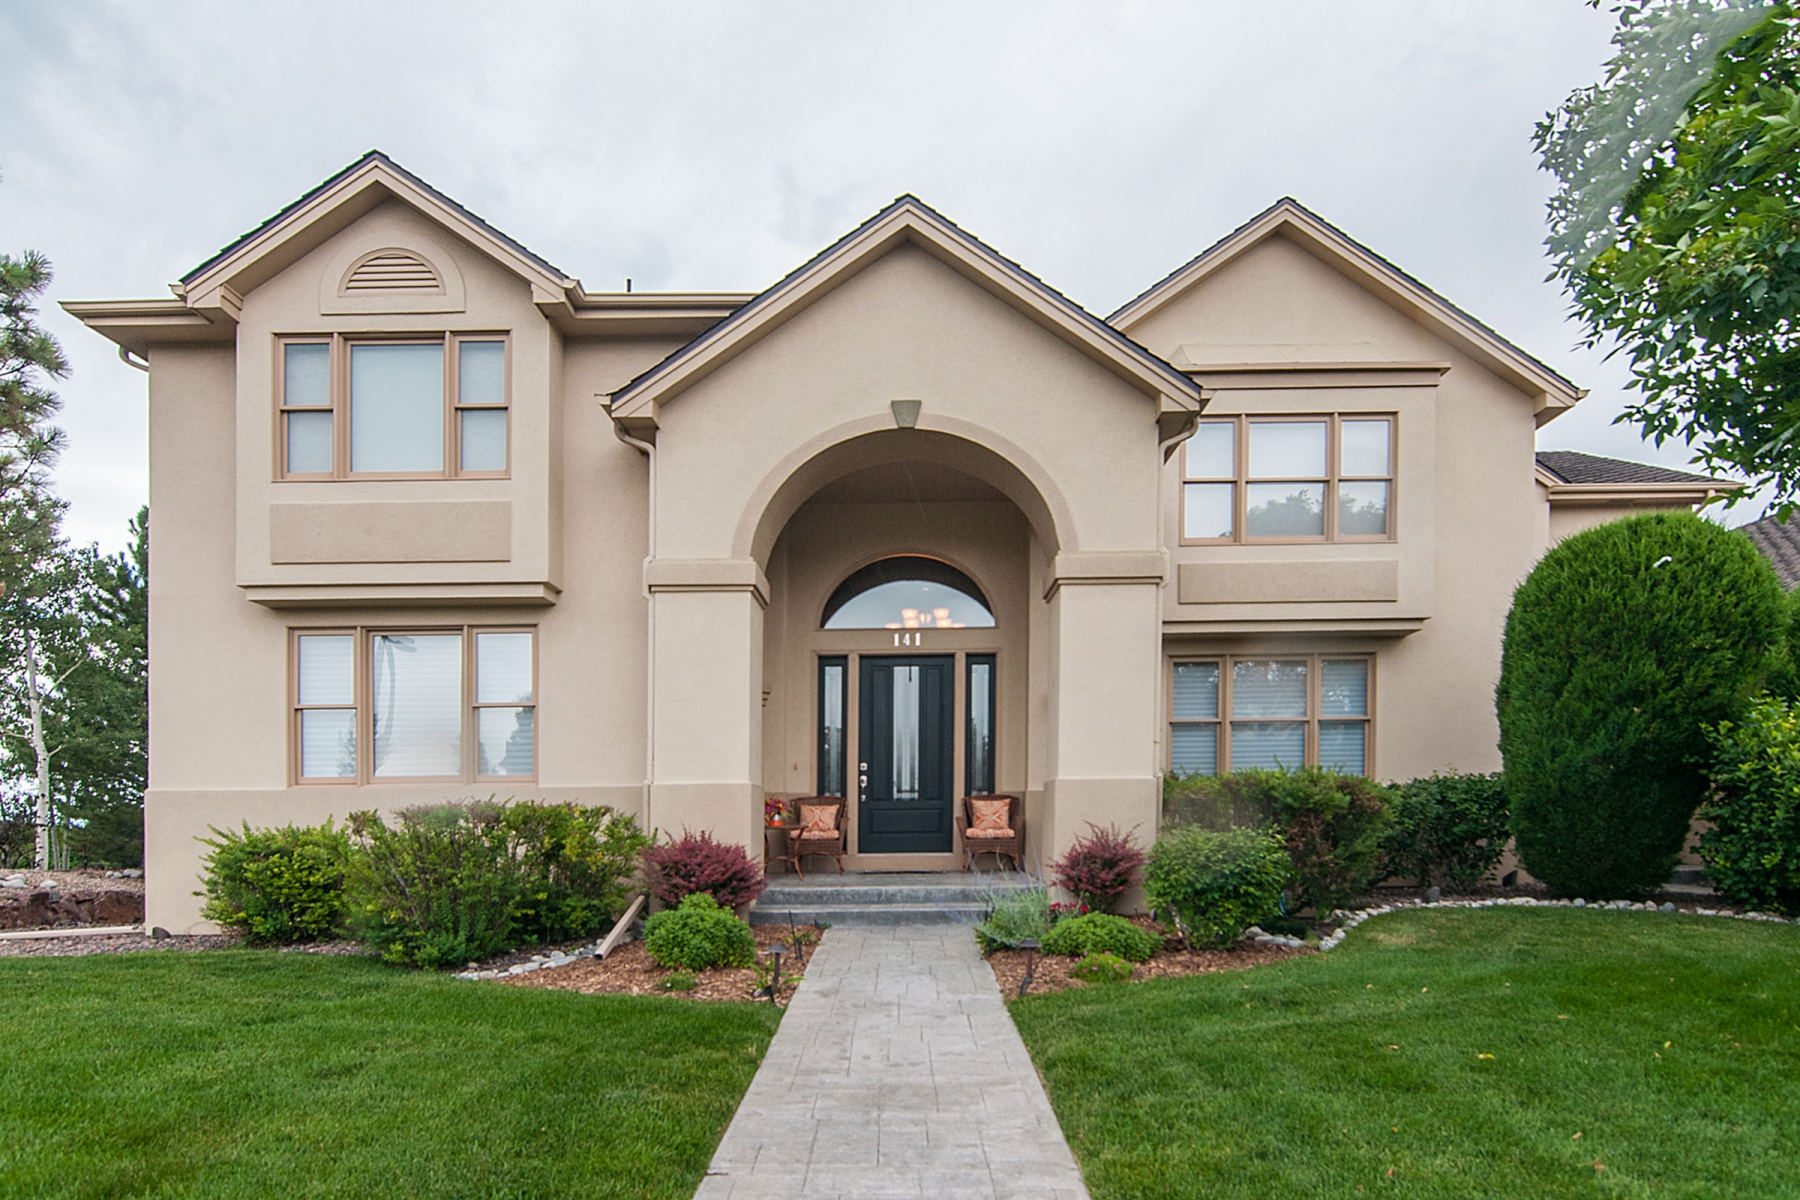 Single Family Home for Sale at Gracefully poised home with great Mountain Views 141 Fairchild Pl Highlands Ranch, Colorado 80126 United States